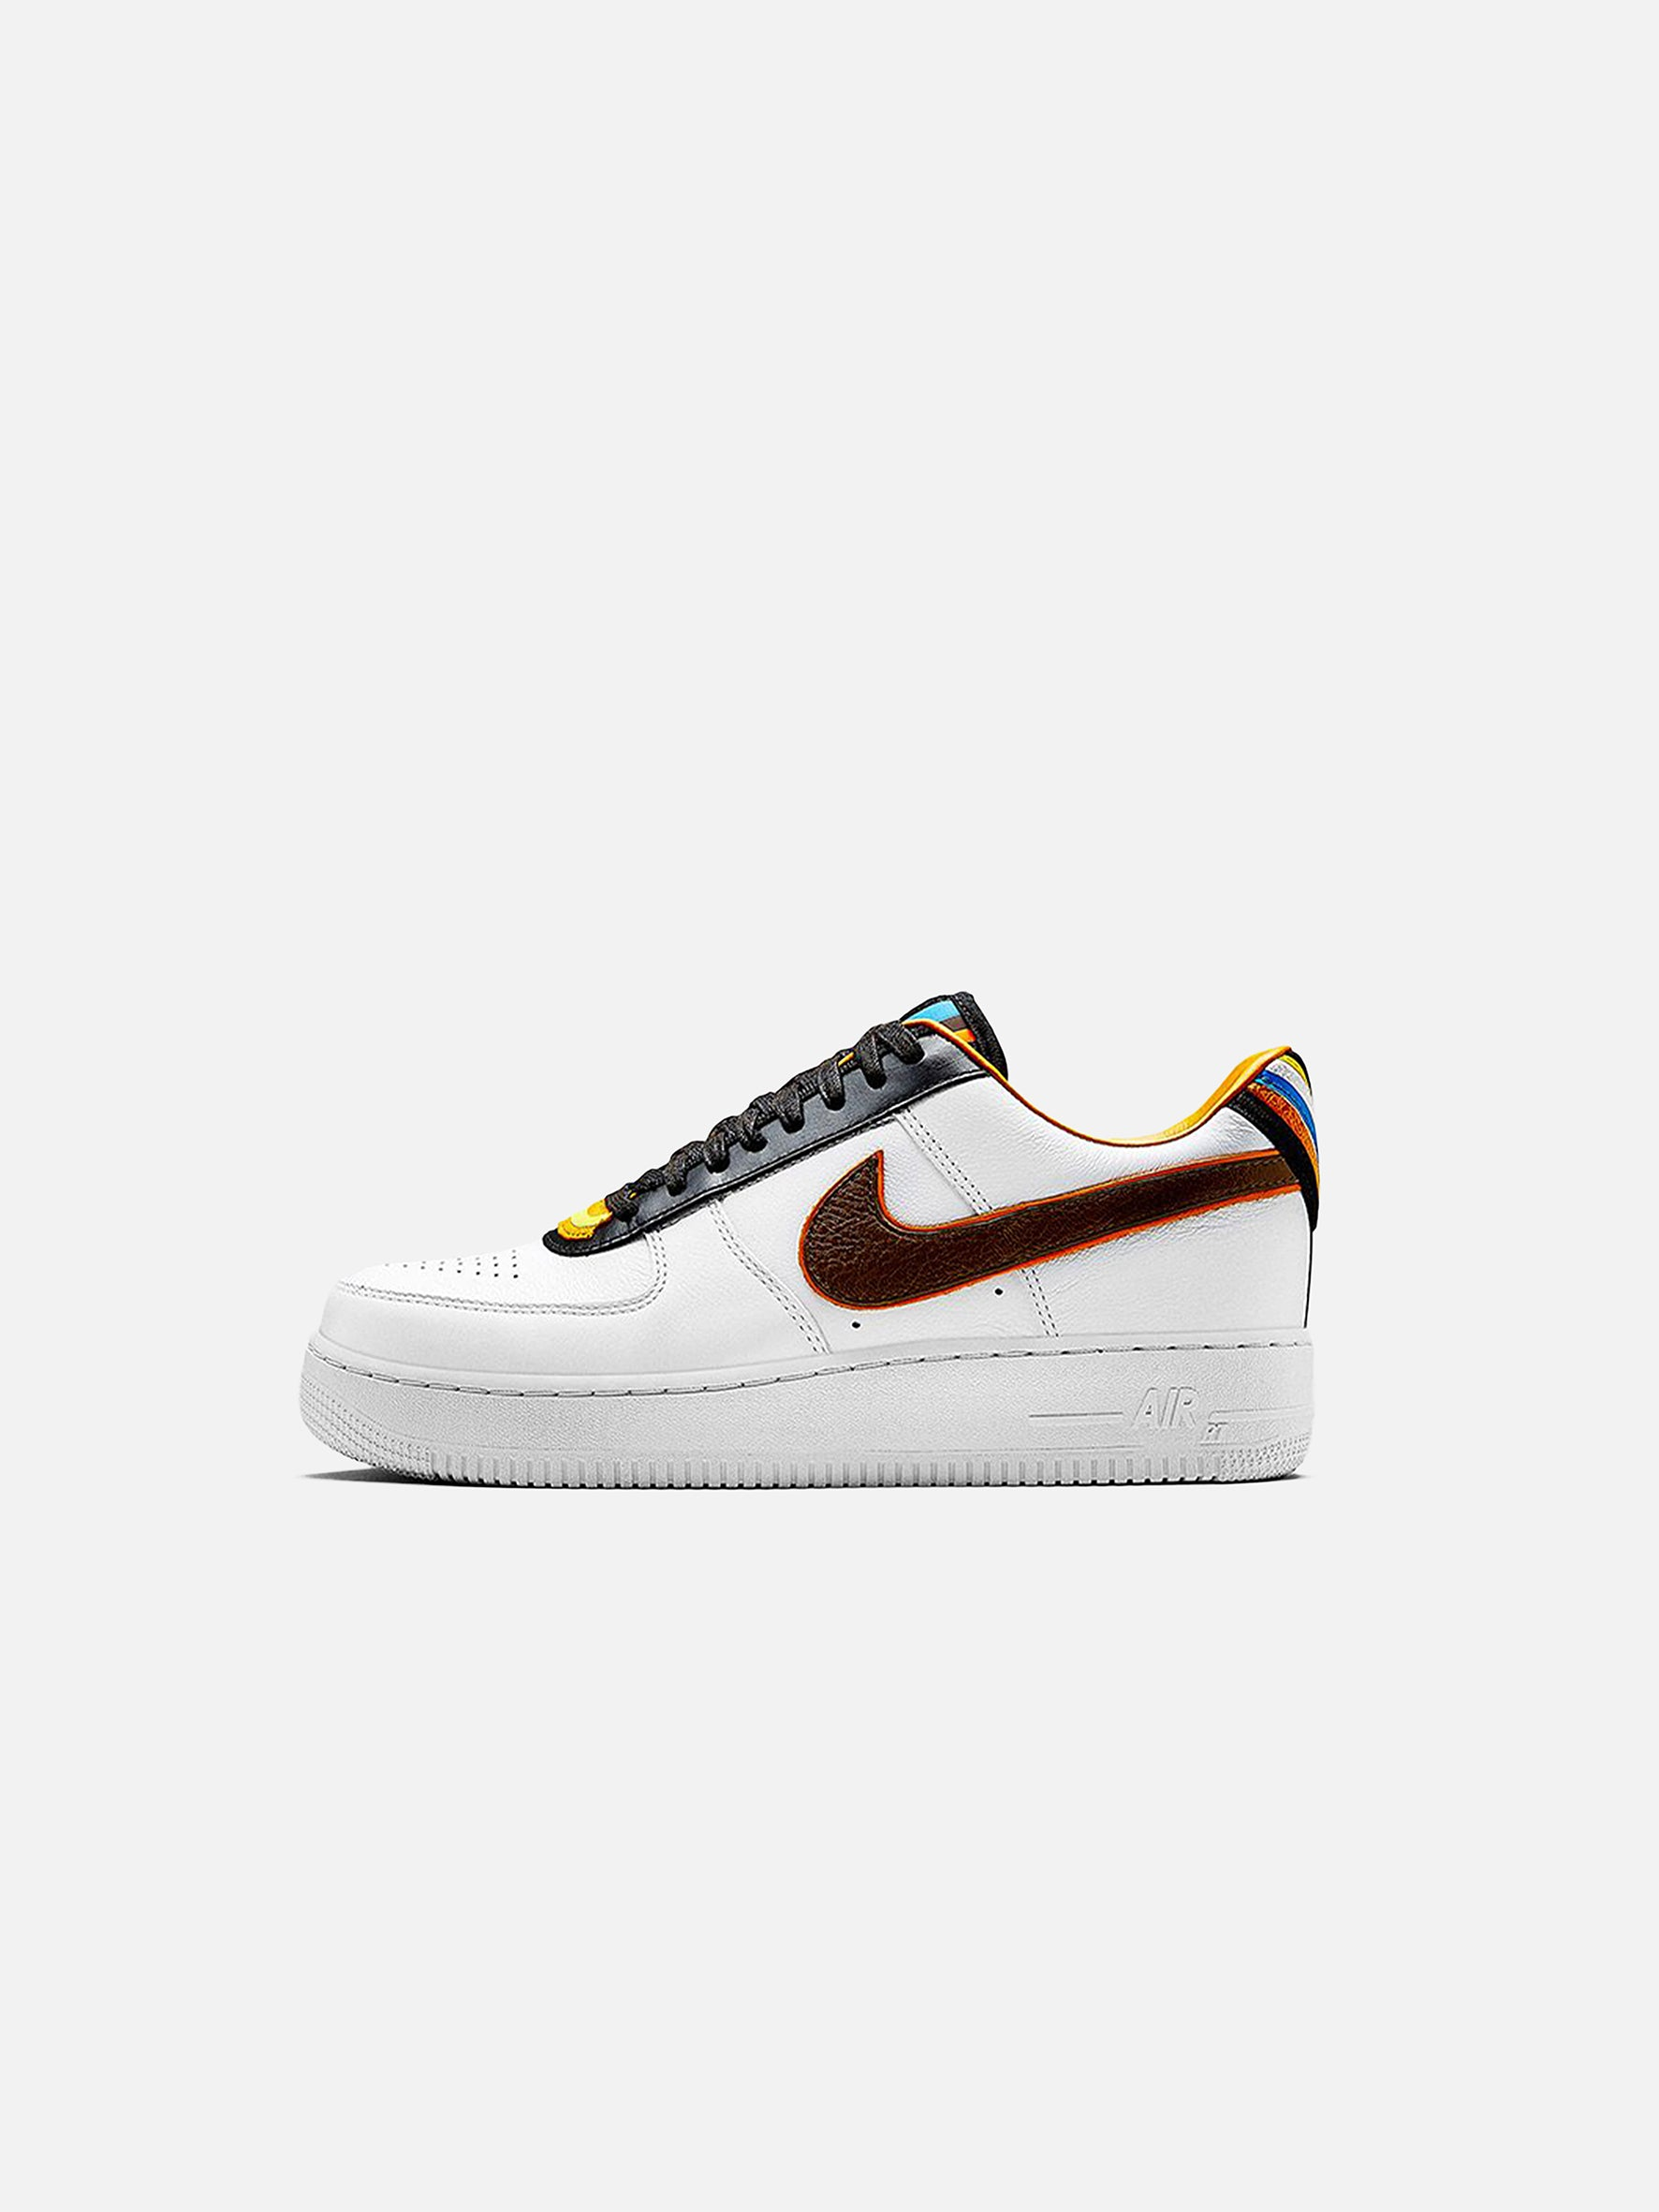 Nike x Ricardo Tisci Air Force 1 Low White